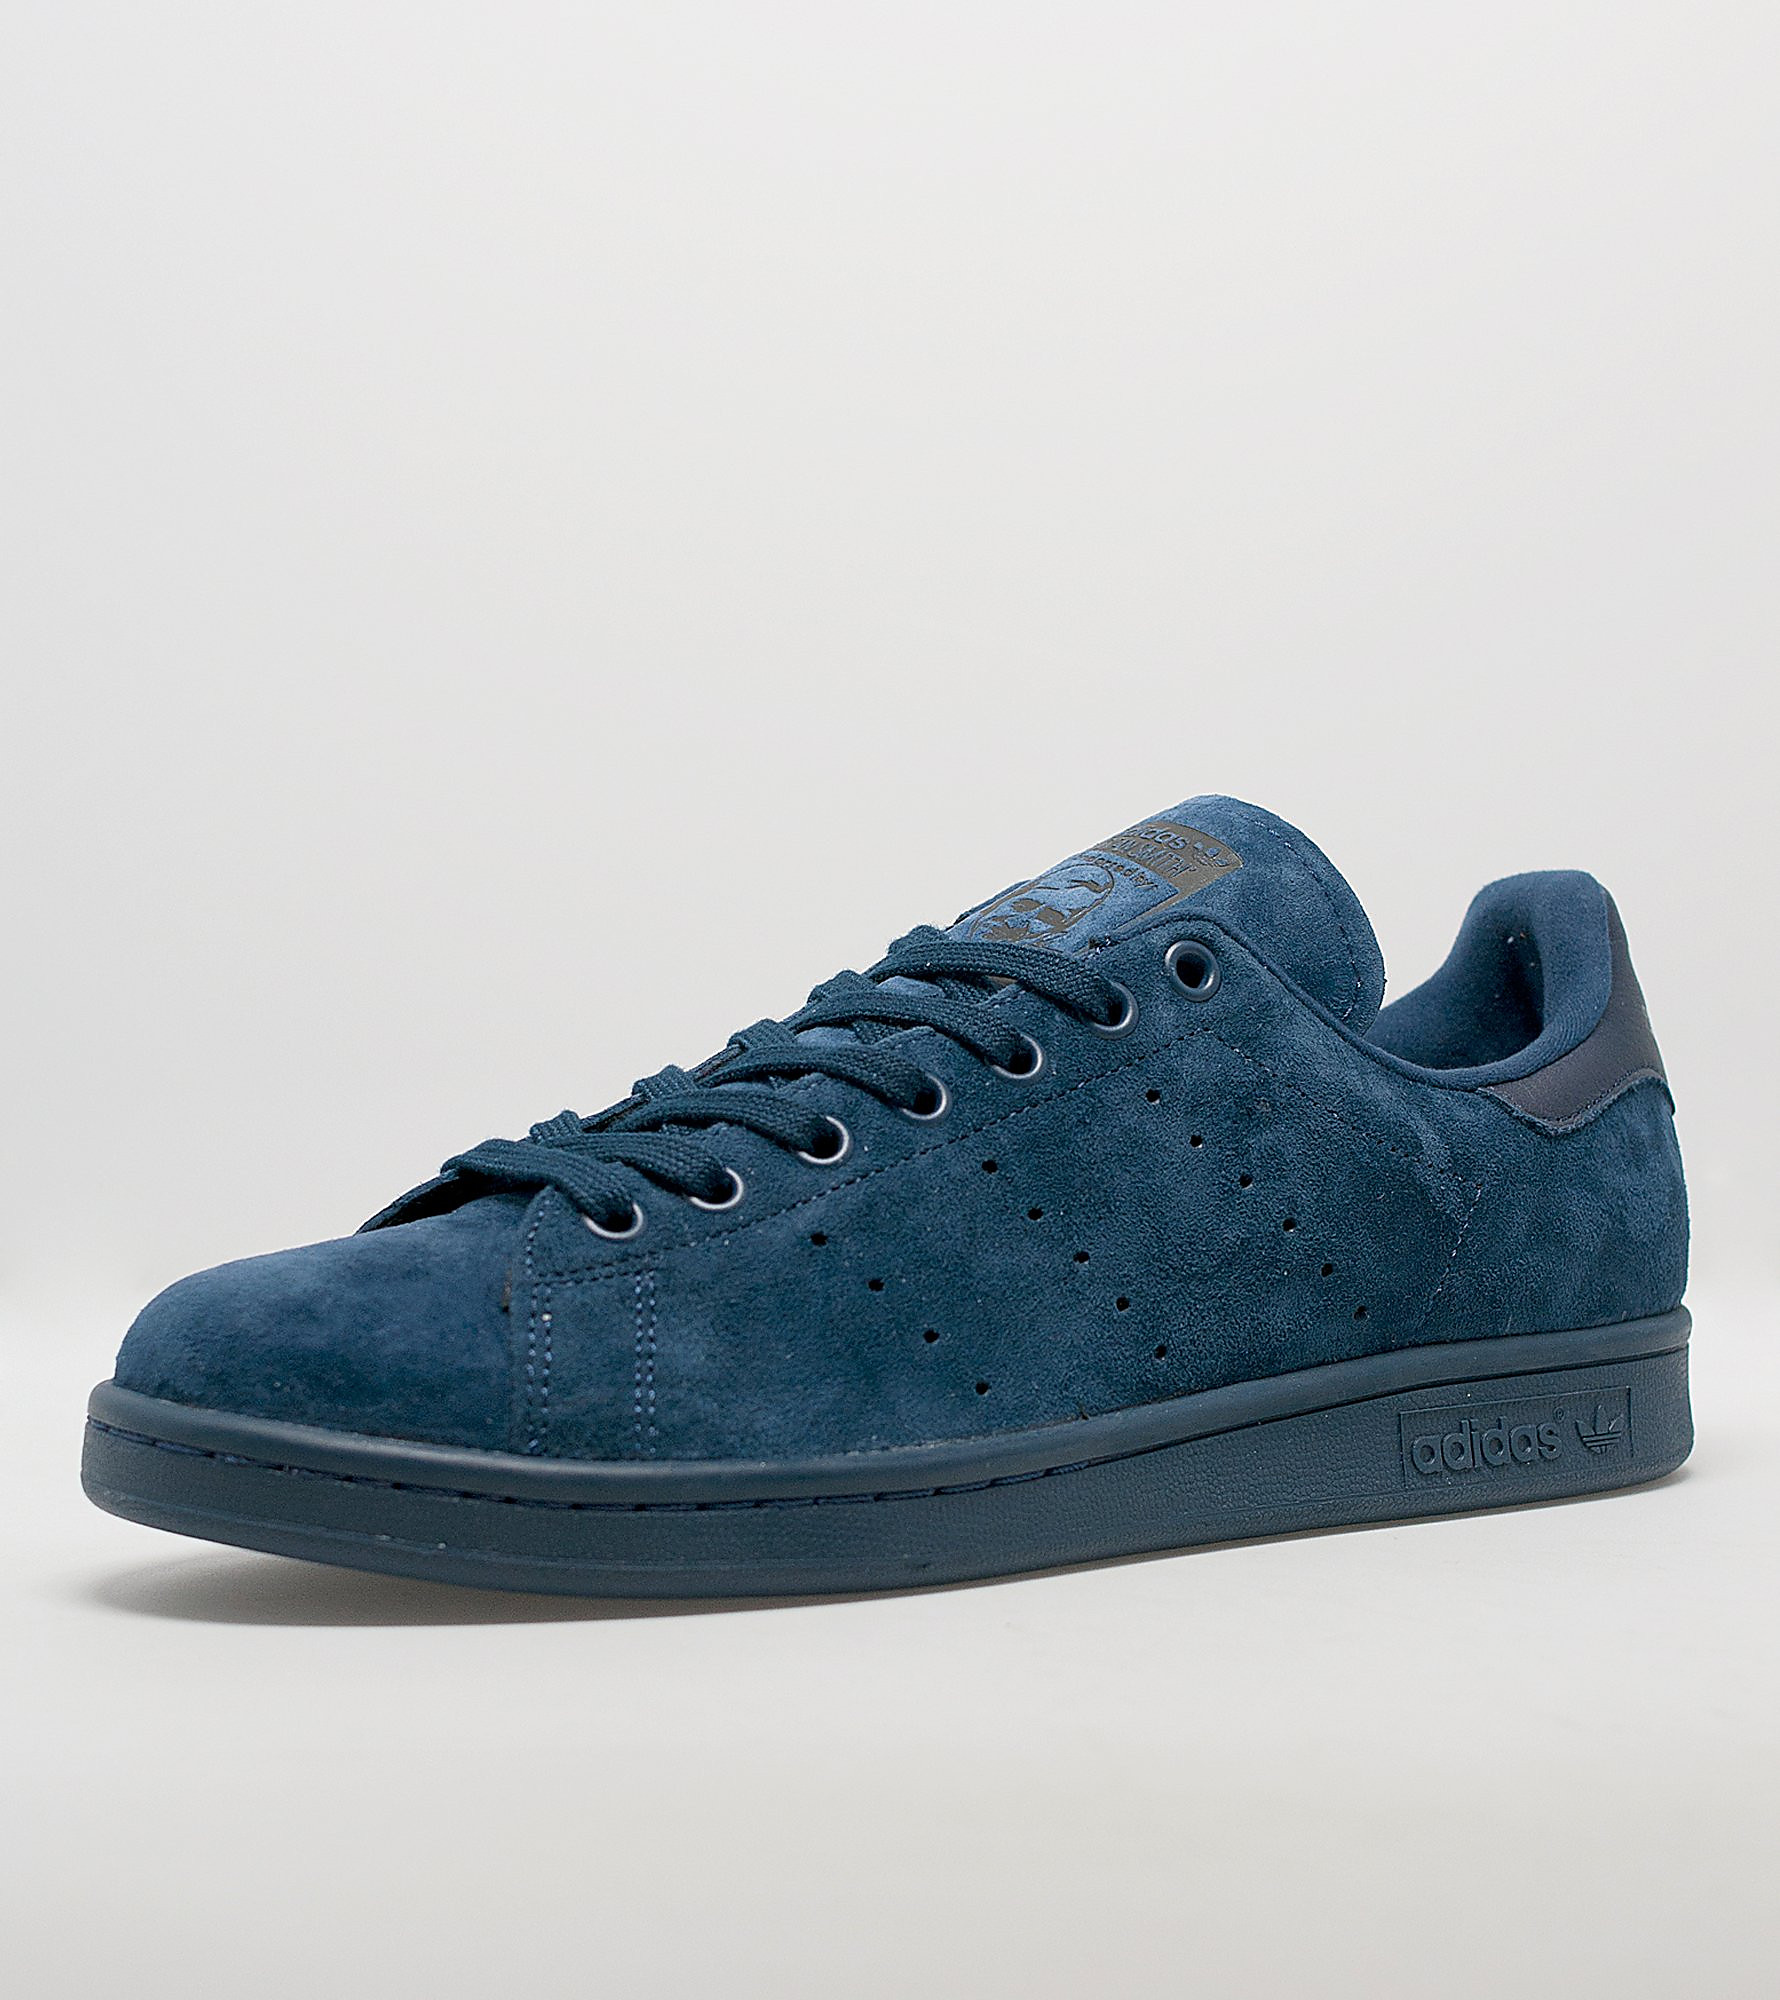 adidas stan smith blue leather packaging news. Black Bedroom Furniture Sets. Home Design Ideas